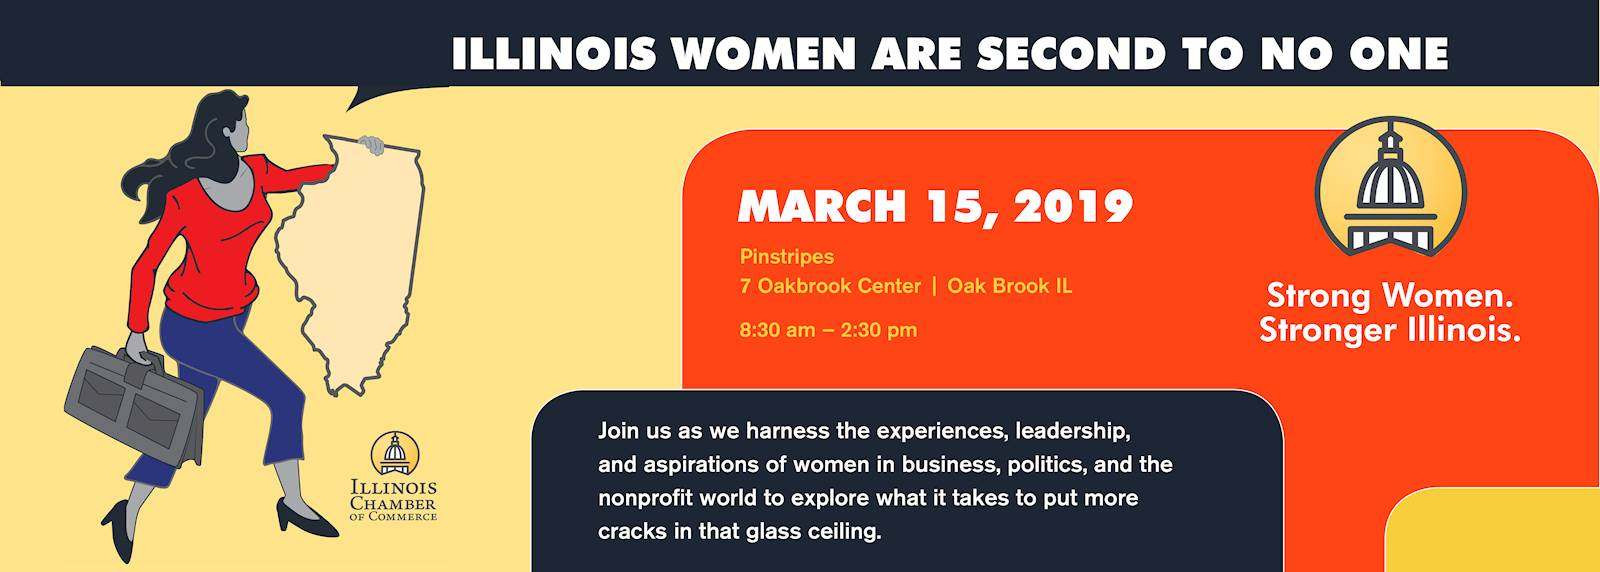 IL Chamber of Commerce 2019 Women In Business Conference